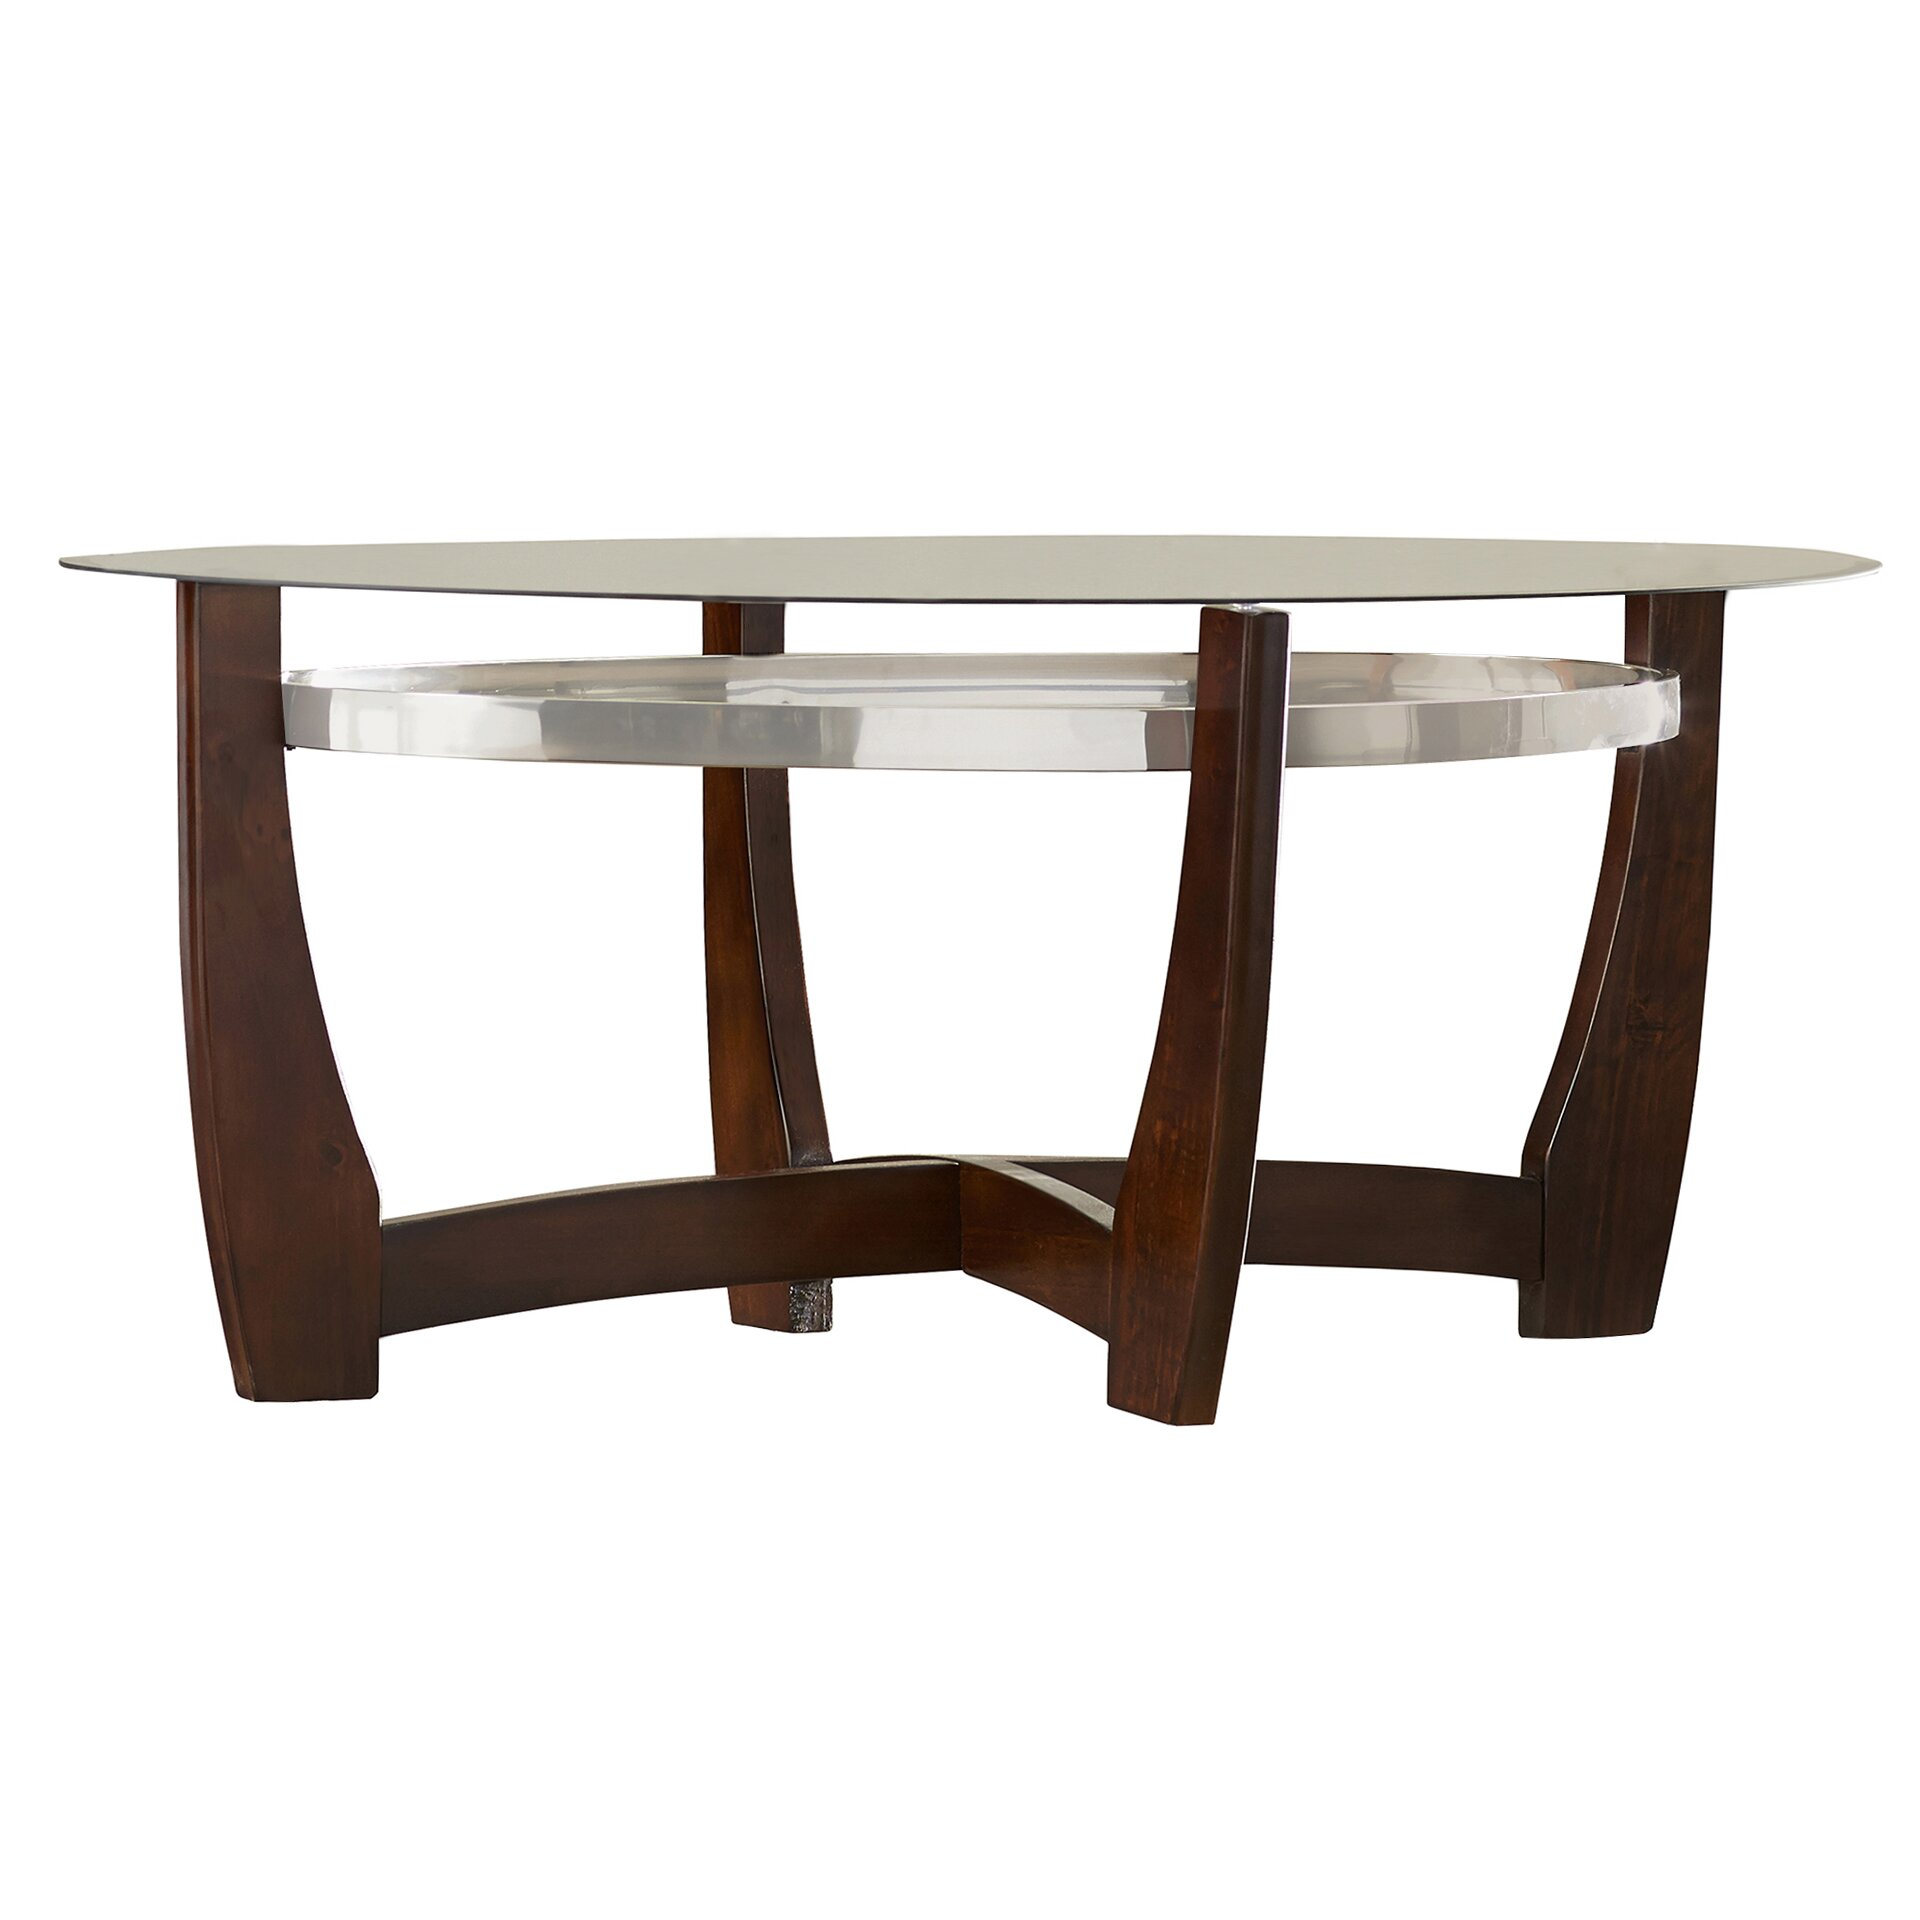 Standard furniture apollo 3 piece coffee table set reviews wayfair 3 set coffee tables